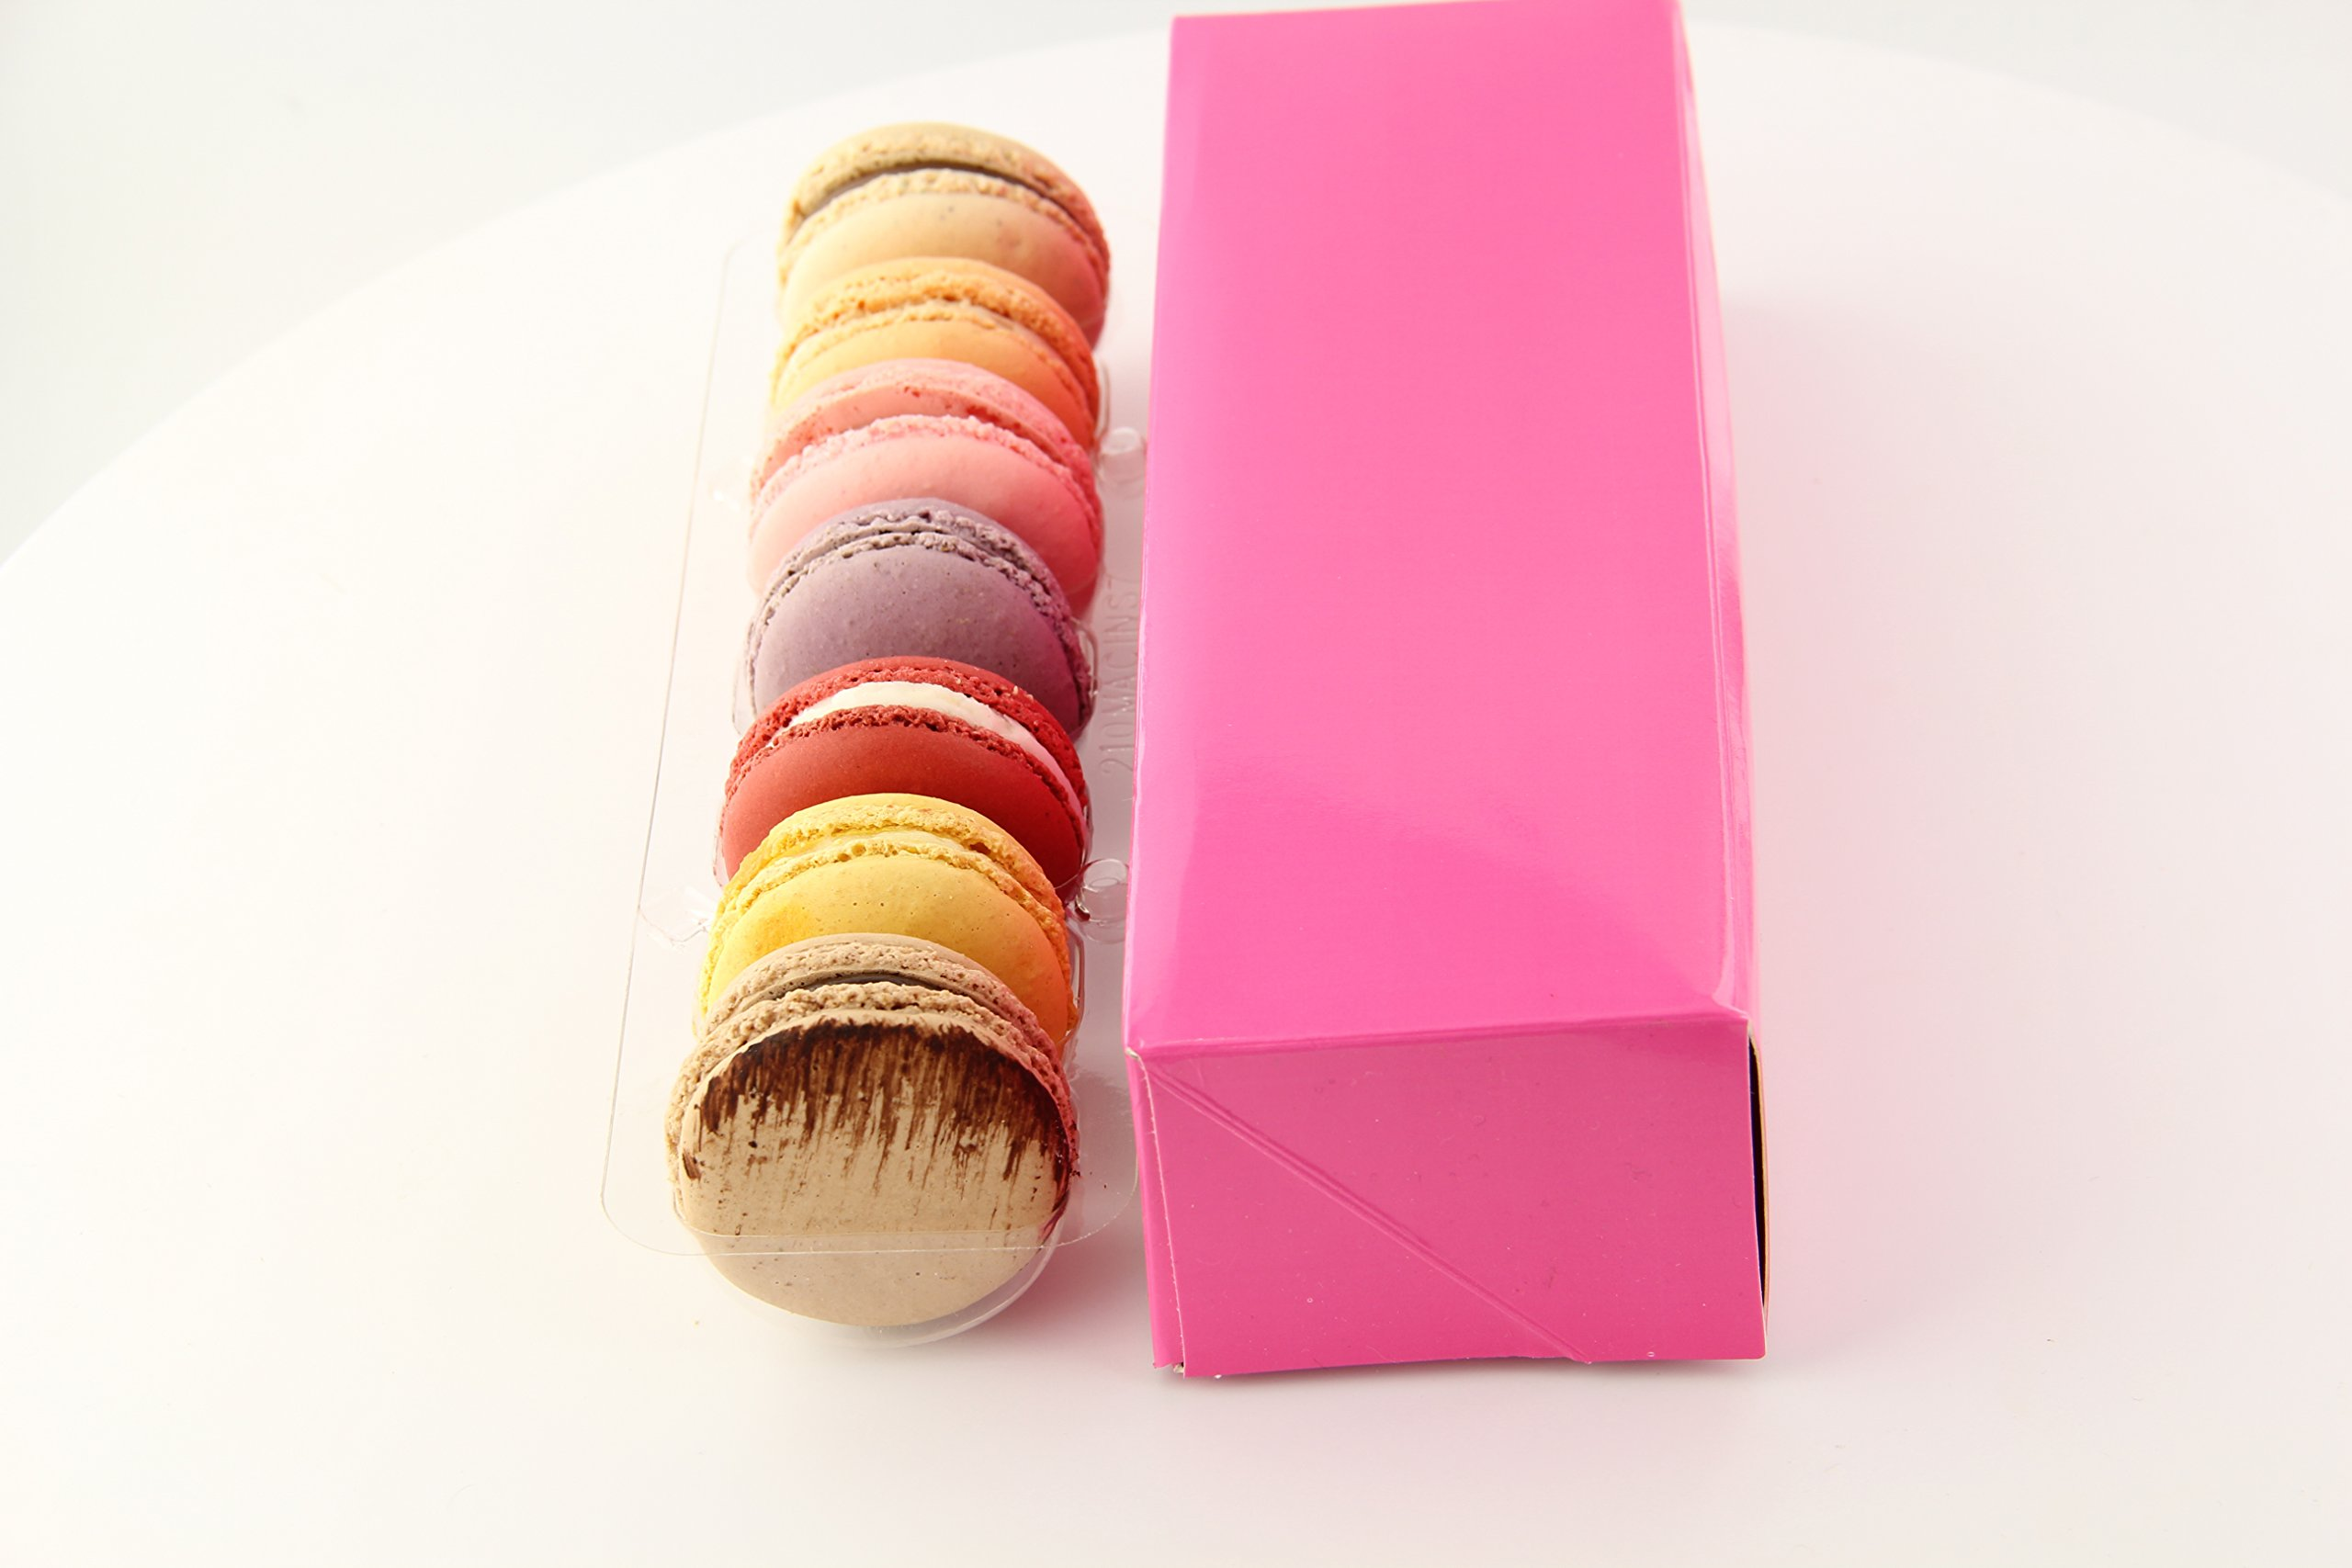 PackNWood 210MAC7 Pink Box with Window for 7 Macarons - 8.5 x 2.7 x 1.9'' - 250 per case